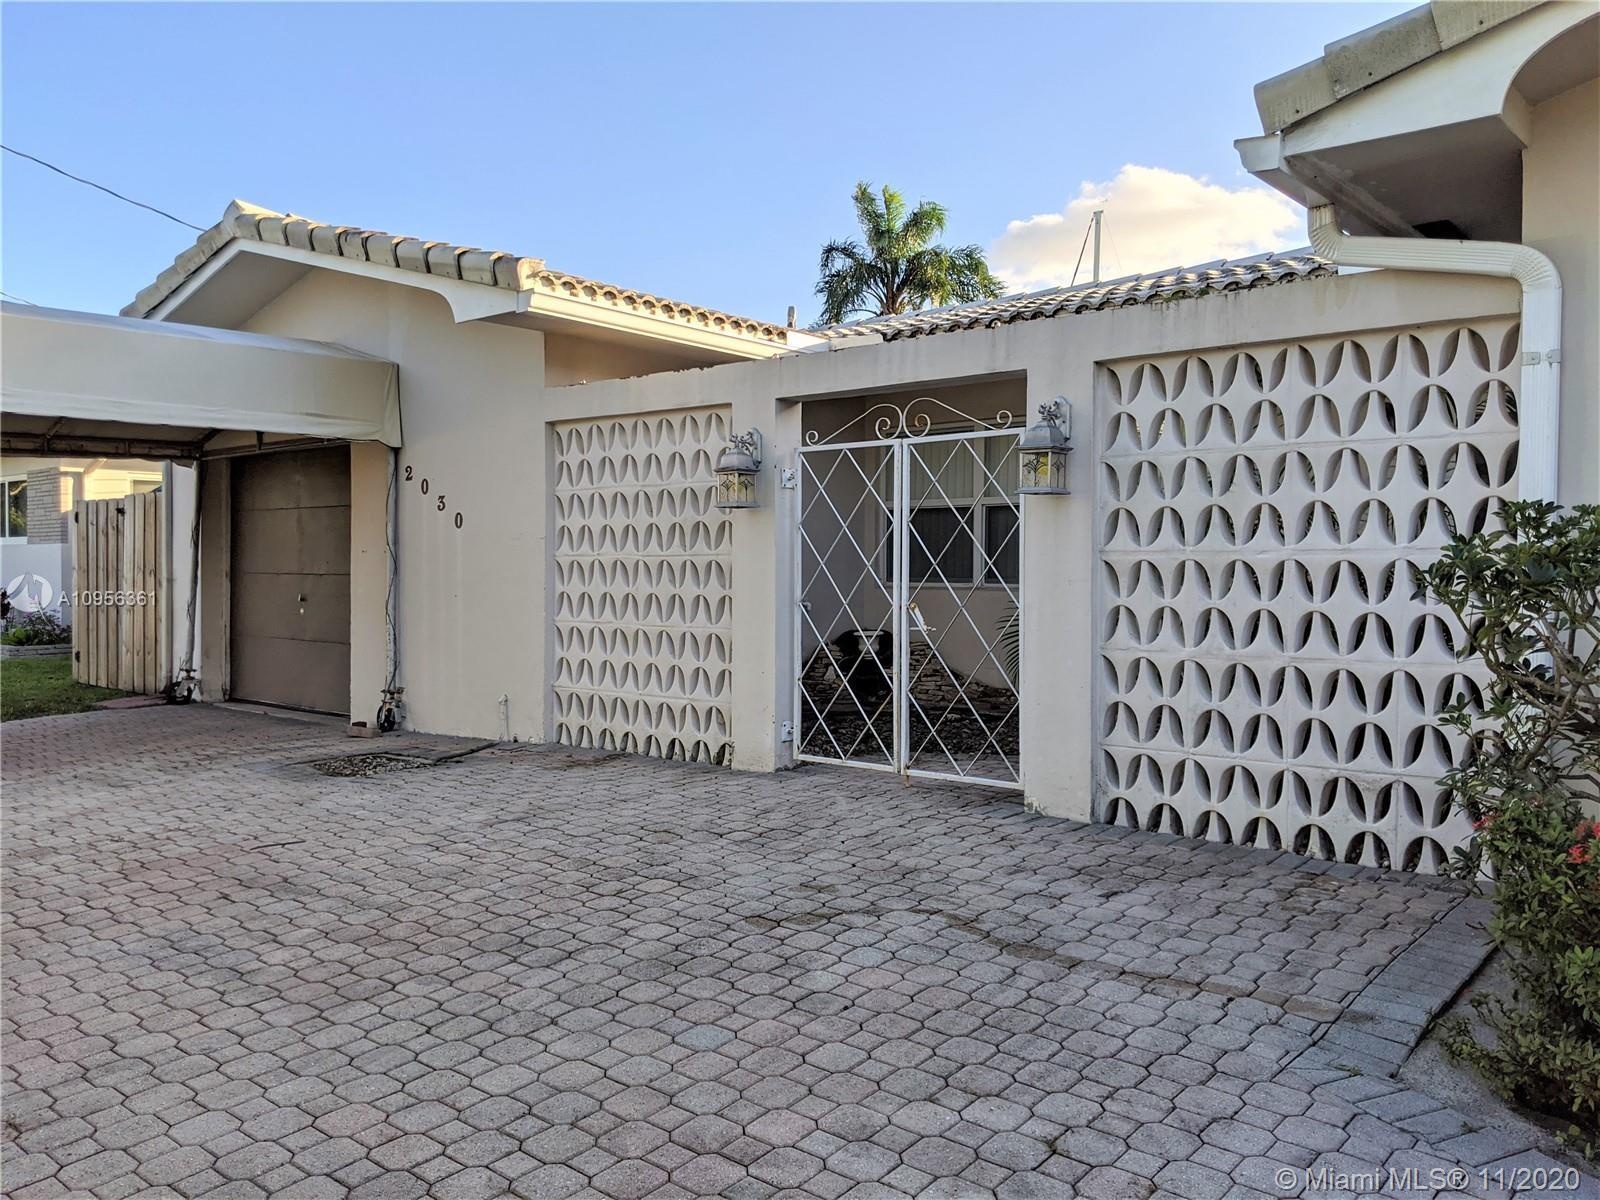 NO FIXED BRIDGES, DIRECT OCEAN ACCESS, 70' OF WATER FRONT IN FLAMINGO PARK. THIS HOUSE IS ONE OF THE